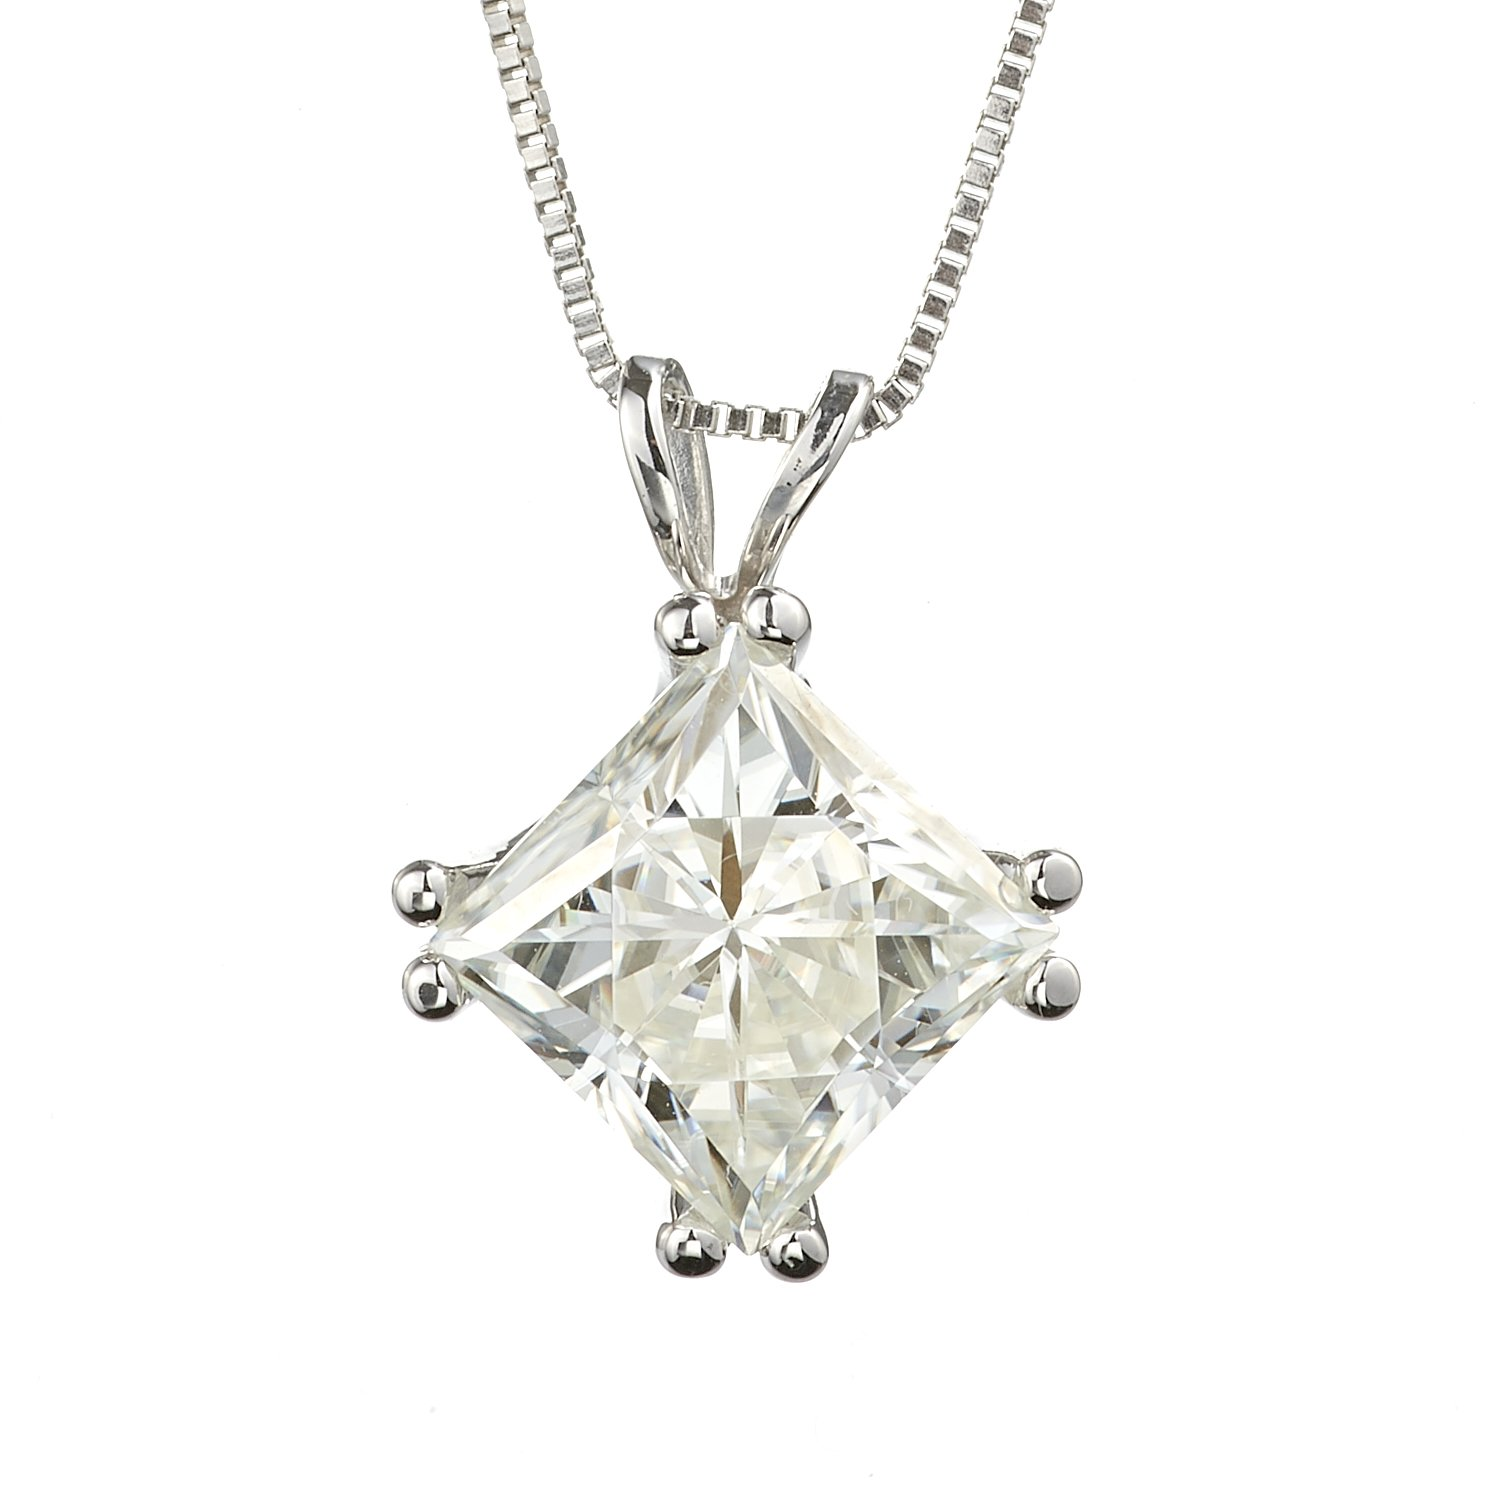 Square Brilliant Cut 7.0mm Moissanite Solitaire Pendant Necklace, 2.10ct DEW By Charles & Colvard